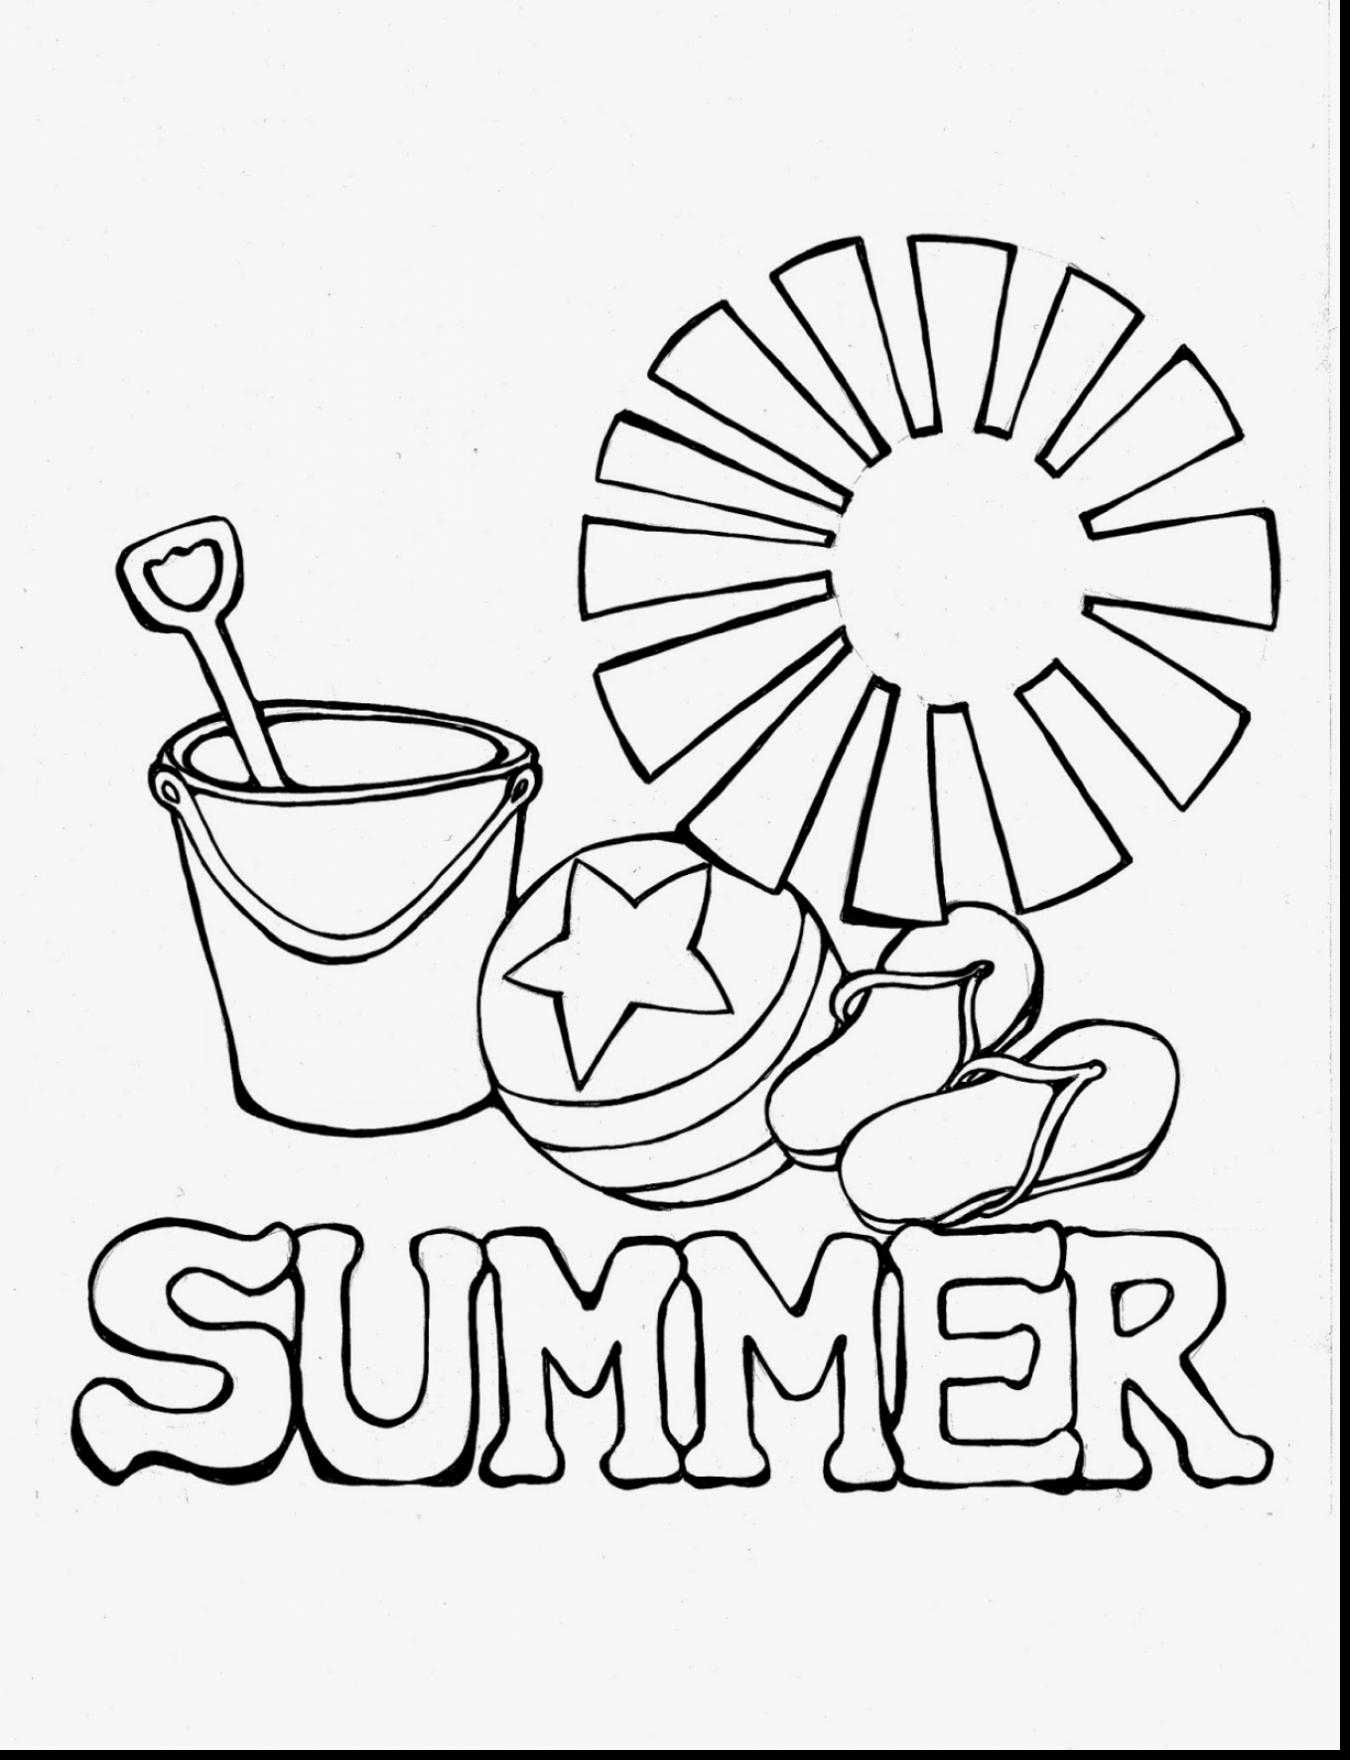 camping coloring pages for preschoolers camping coloring pages camping coloring pages coloring preschoolers pages for coloring camping